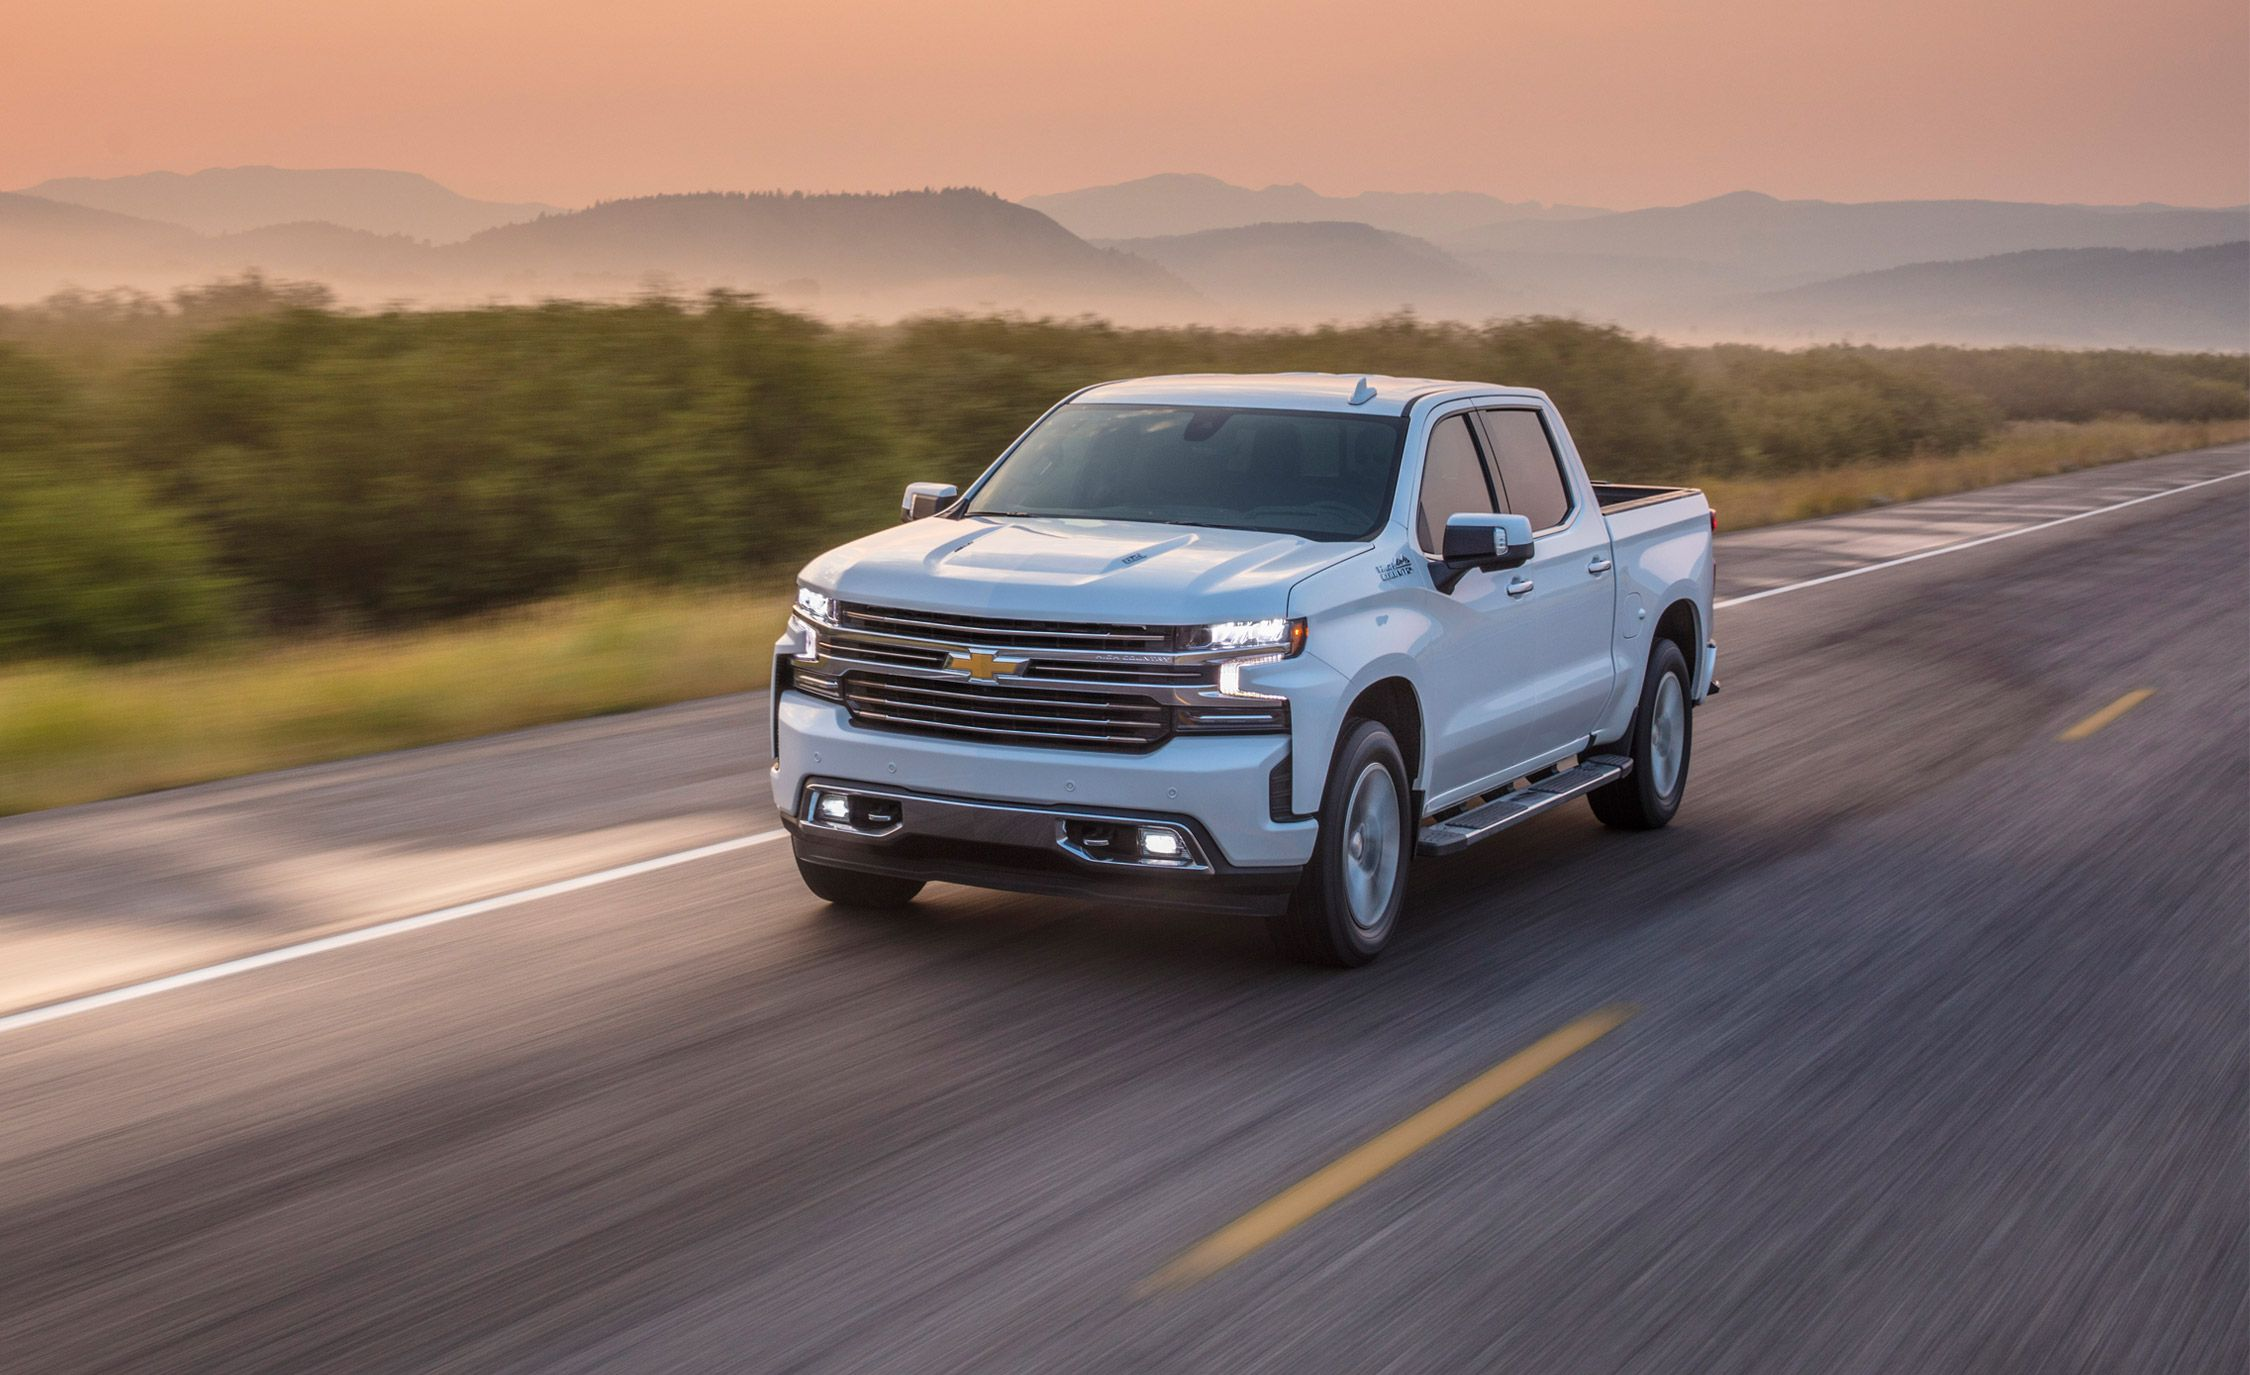 2019 Chevrolet Silverado 1500 Driven: Longer, Lighter, More Fuel Efficient, and Extremely Refined